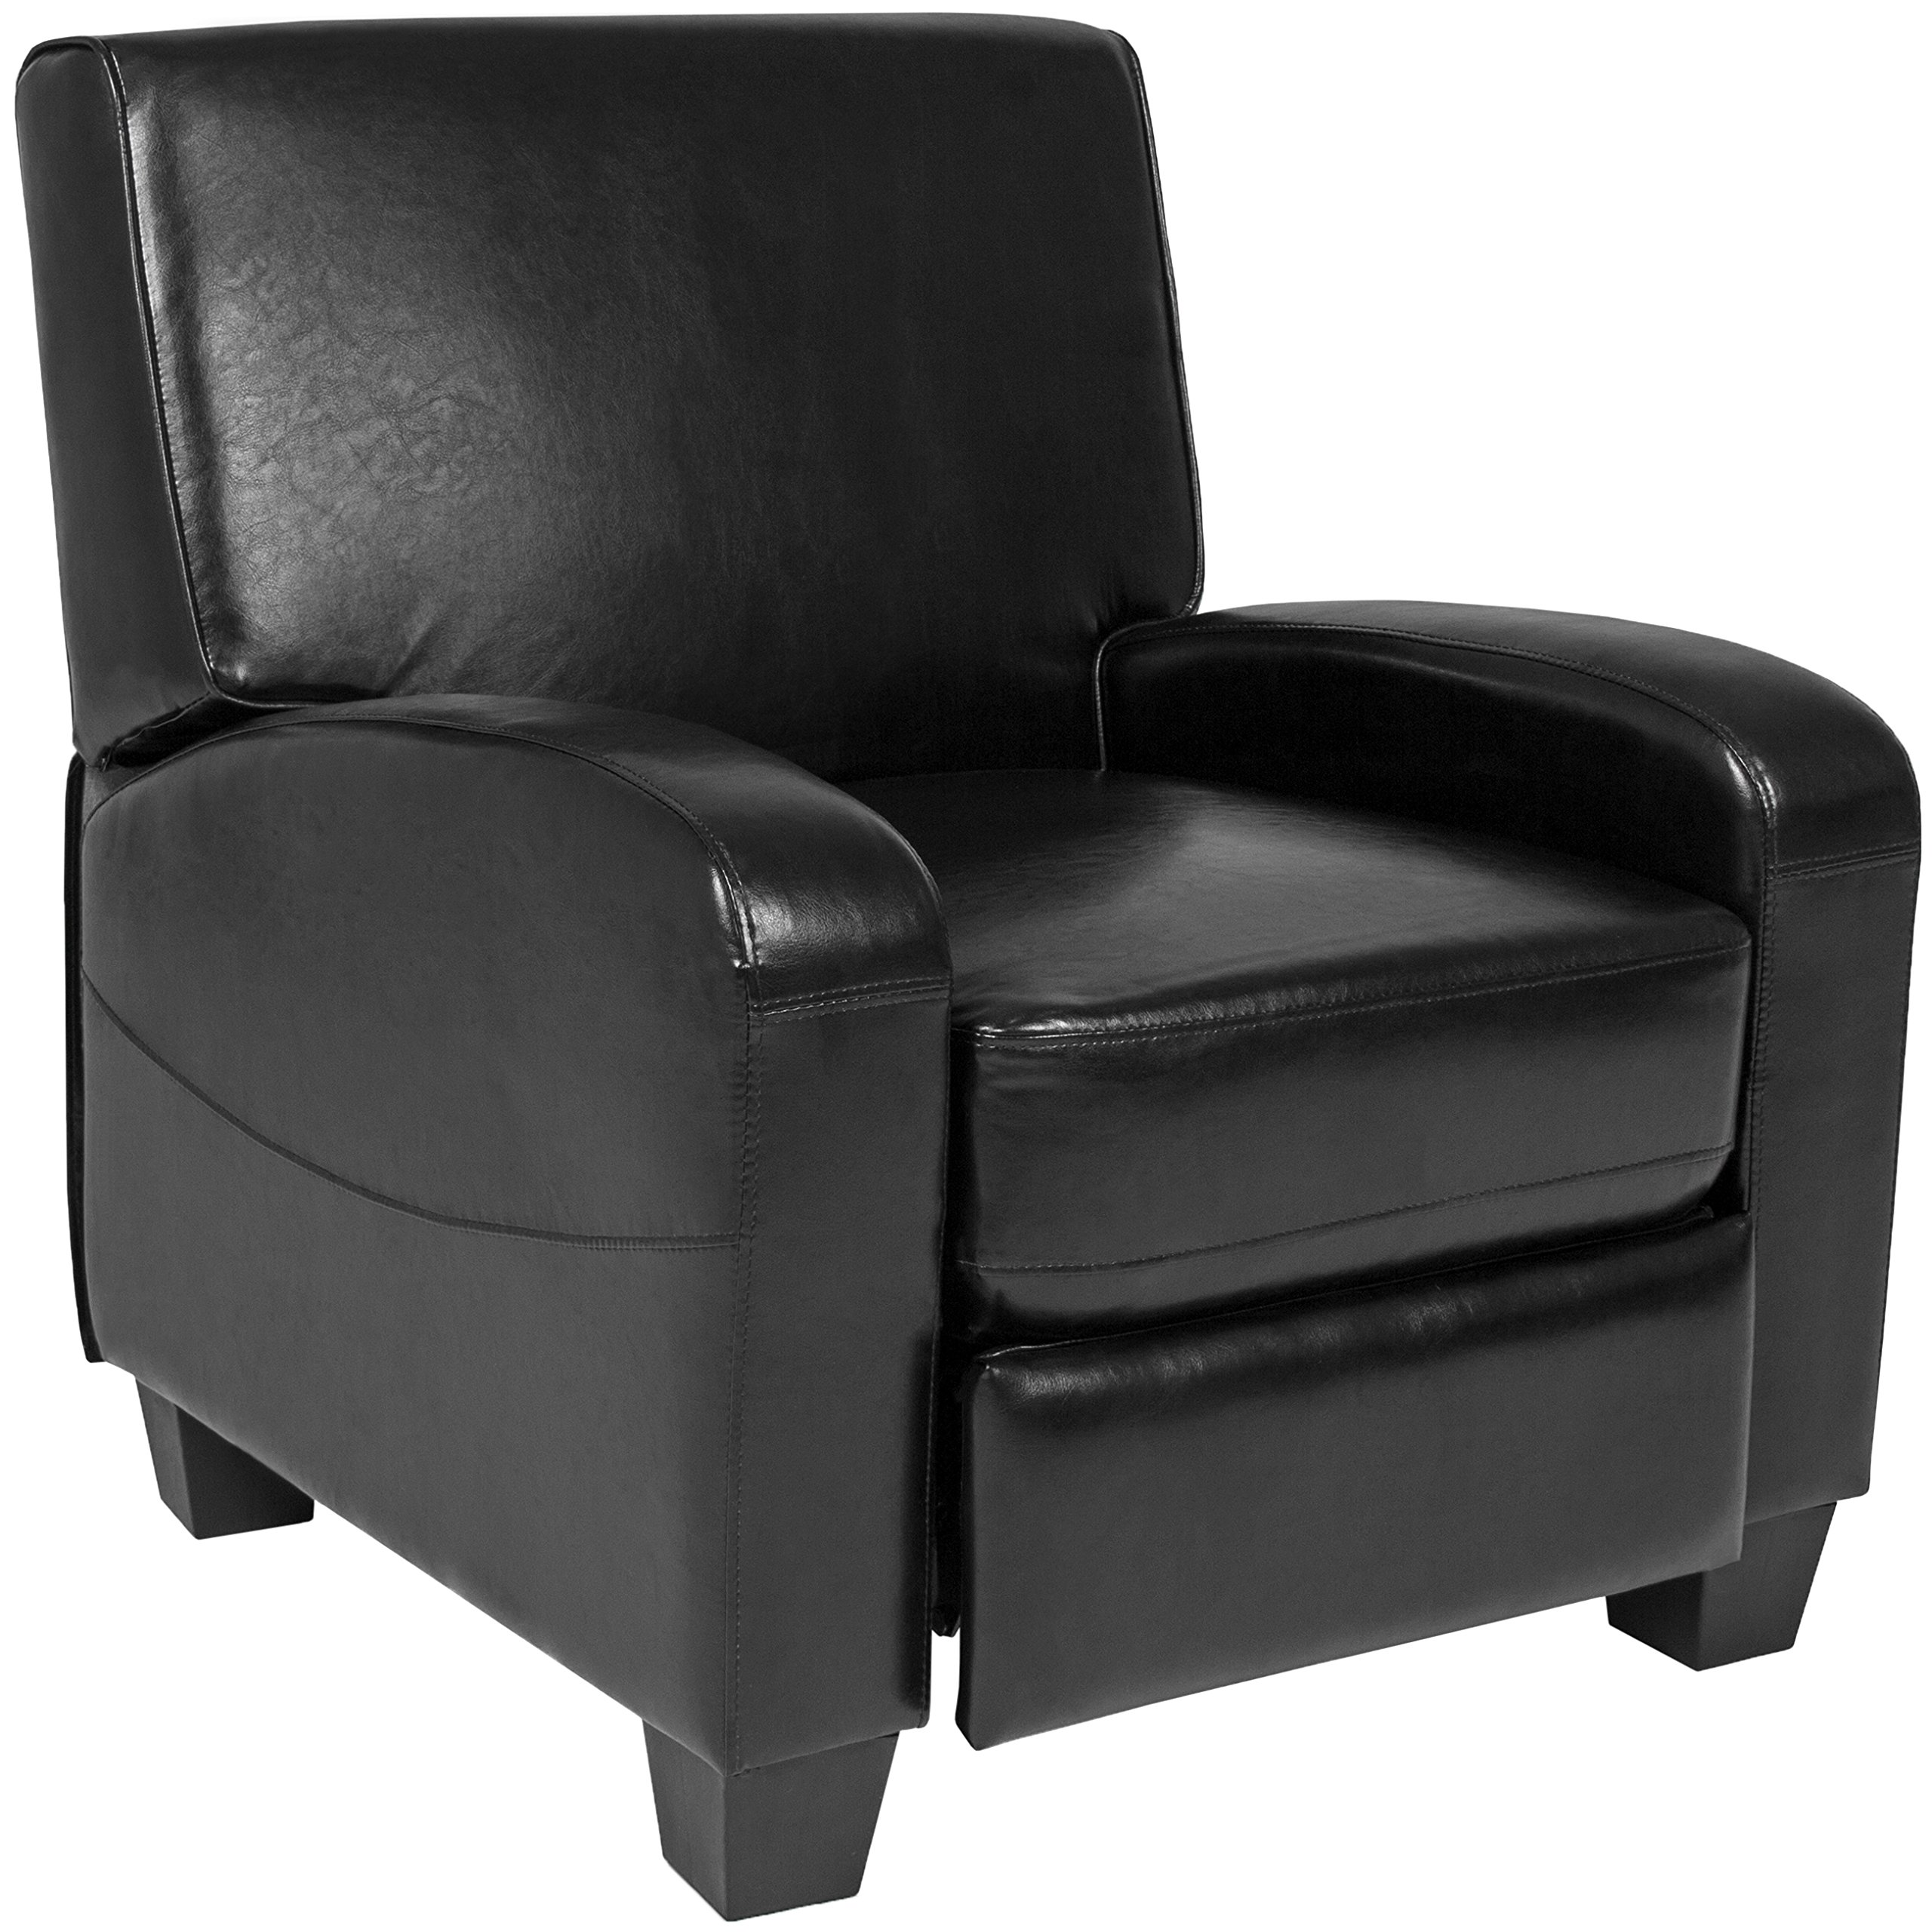 Best Choice Products Padded Upholstery Faux Leather Modern Single Recliner Chair for Living Room, Home Theater Black